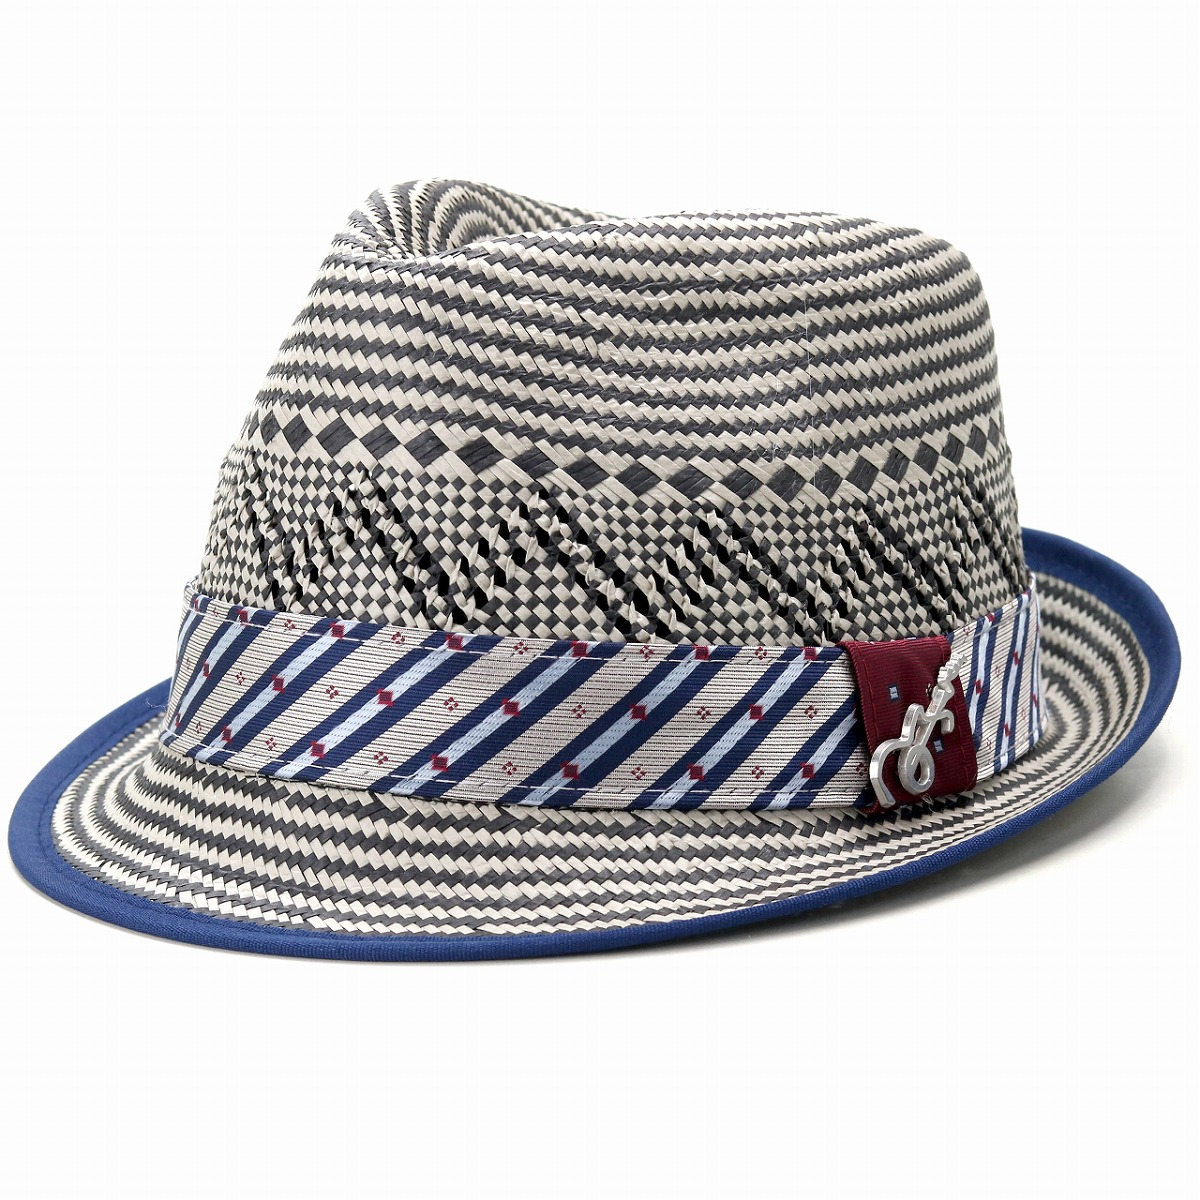 97522b7c3 Carlos Santana hat men pattern straw hat Degree TOYO aestheometry soft felt  hat ストローハットレディースハットトーヨーインポー ...